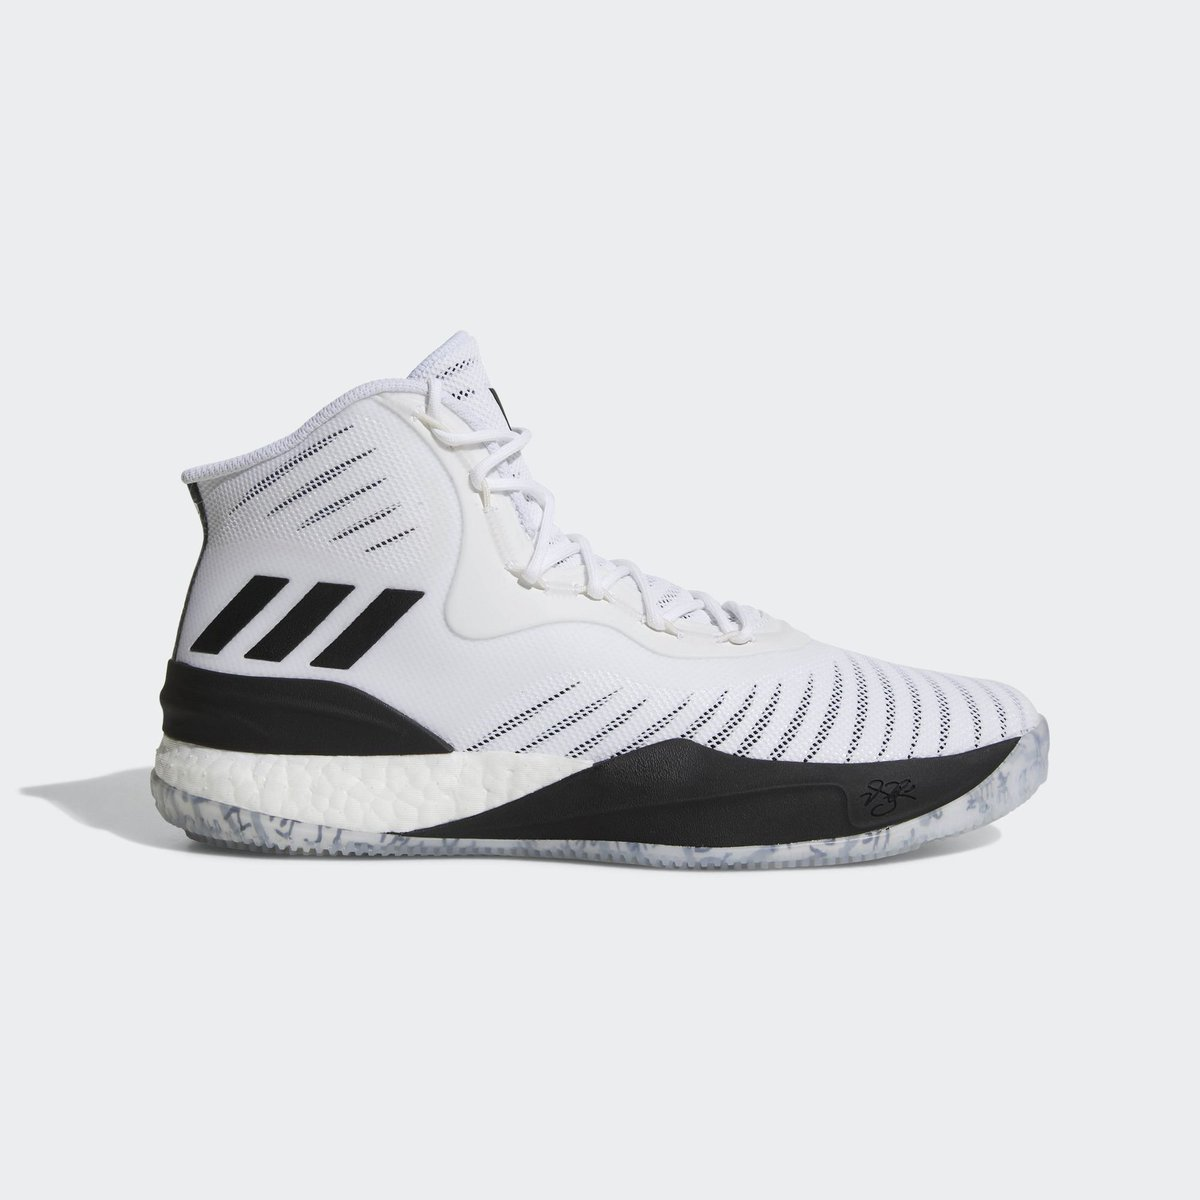 super popular c8aaf 519bc ... switzerland weartesters on twitter the adidas d rose 8 surfaces in two  new colorways t. ...